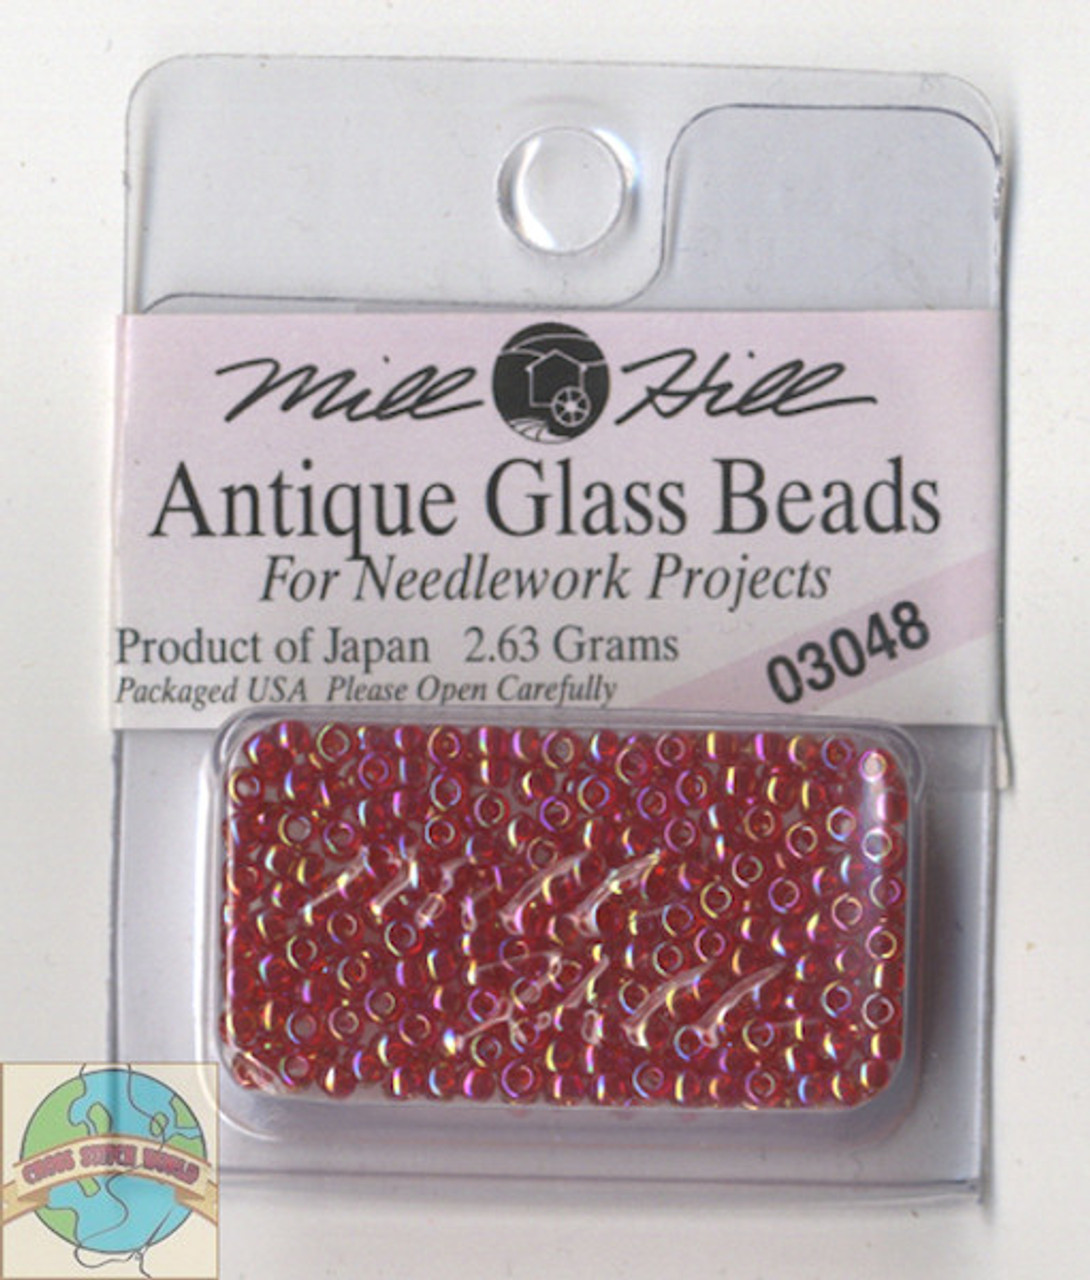 Mill Hill Antique Glass Beads 2.63g Cinnamon Red #03048